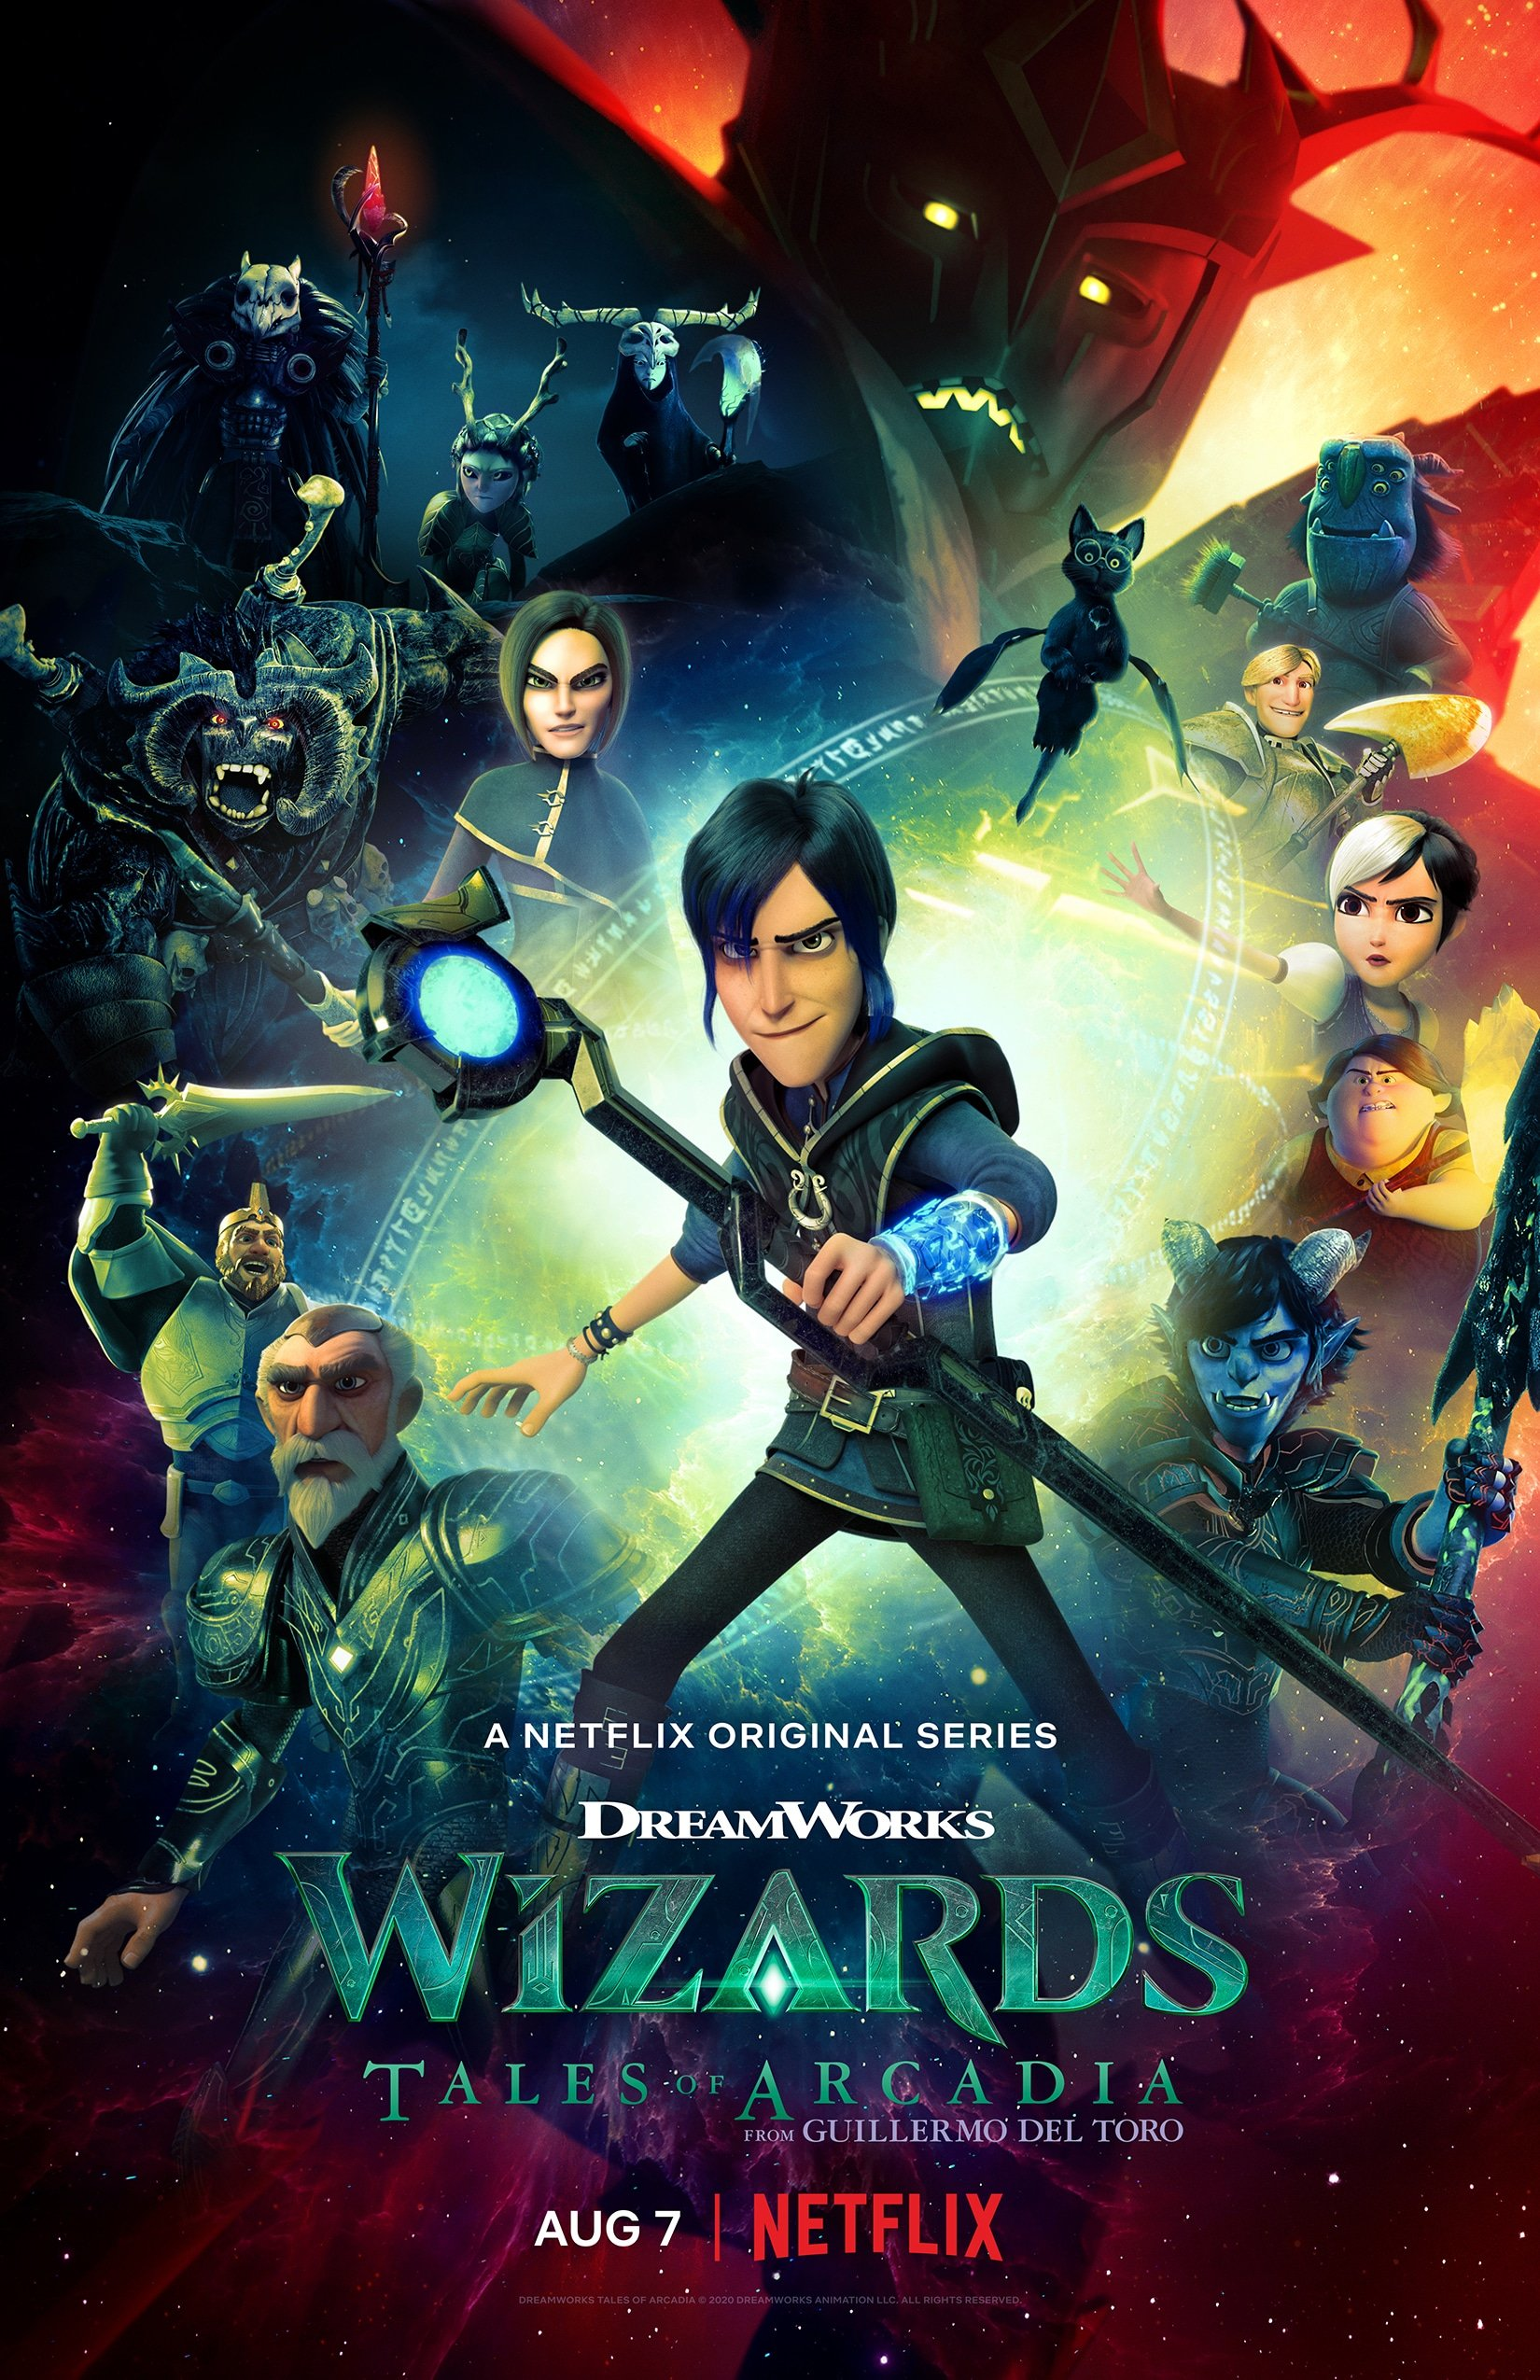 DreamWorks Wizards: Tales of Arcadia. Join our favorite supernatural heroes on a time-bending adventure to medieval Camelot. The magic continues the final chapter of the Tales of Arcadia saga, Wizards! Coming to Netflix August 7, 2020.